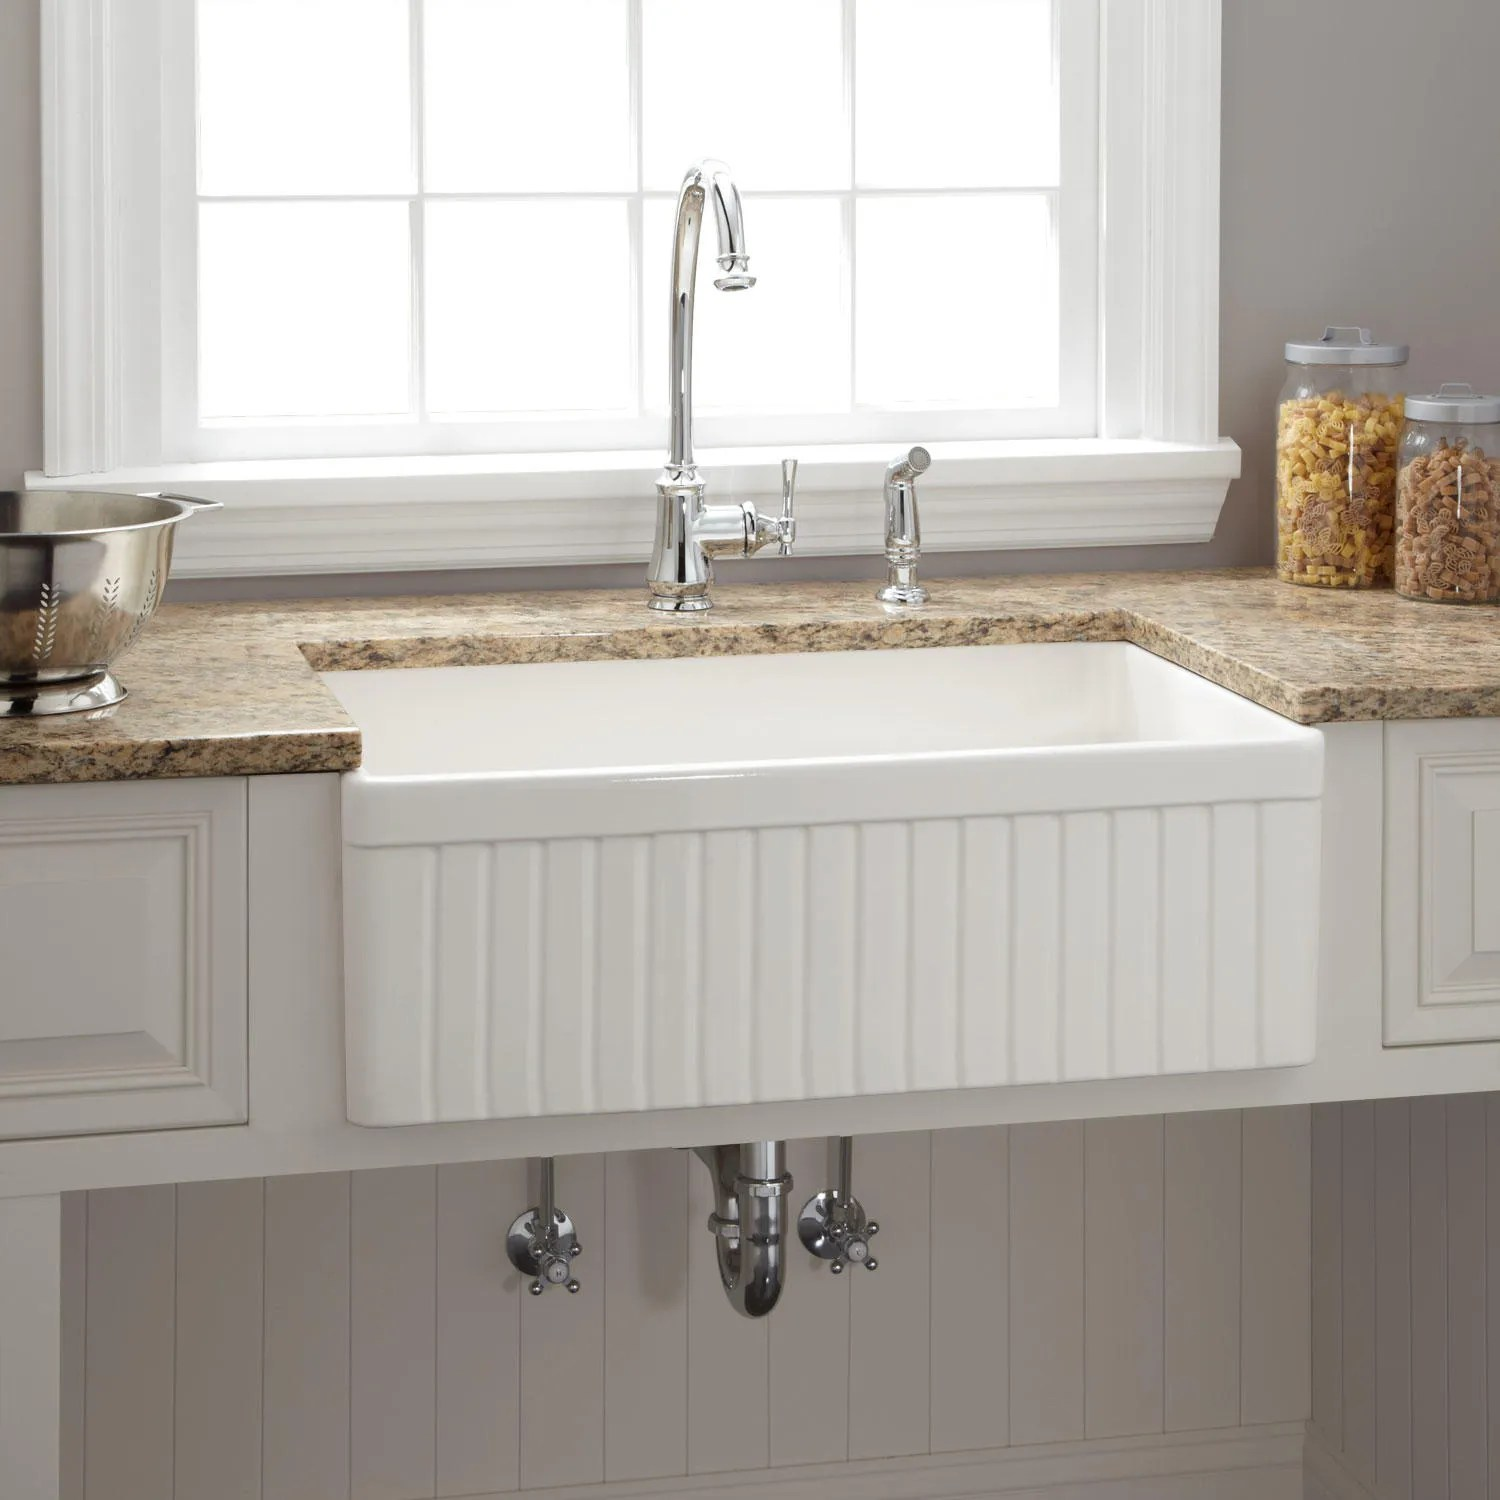 lc buying guide farmhouse sink farm sinks for kitchens